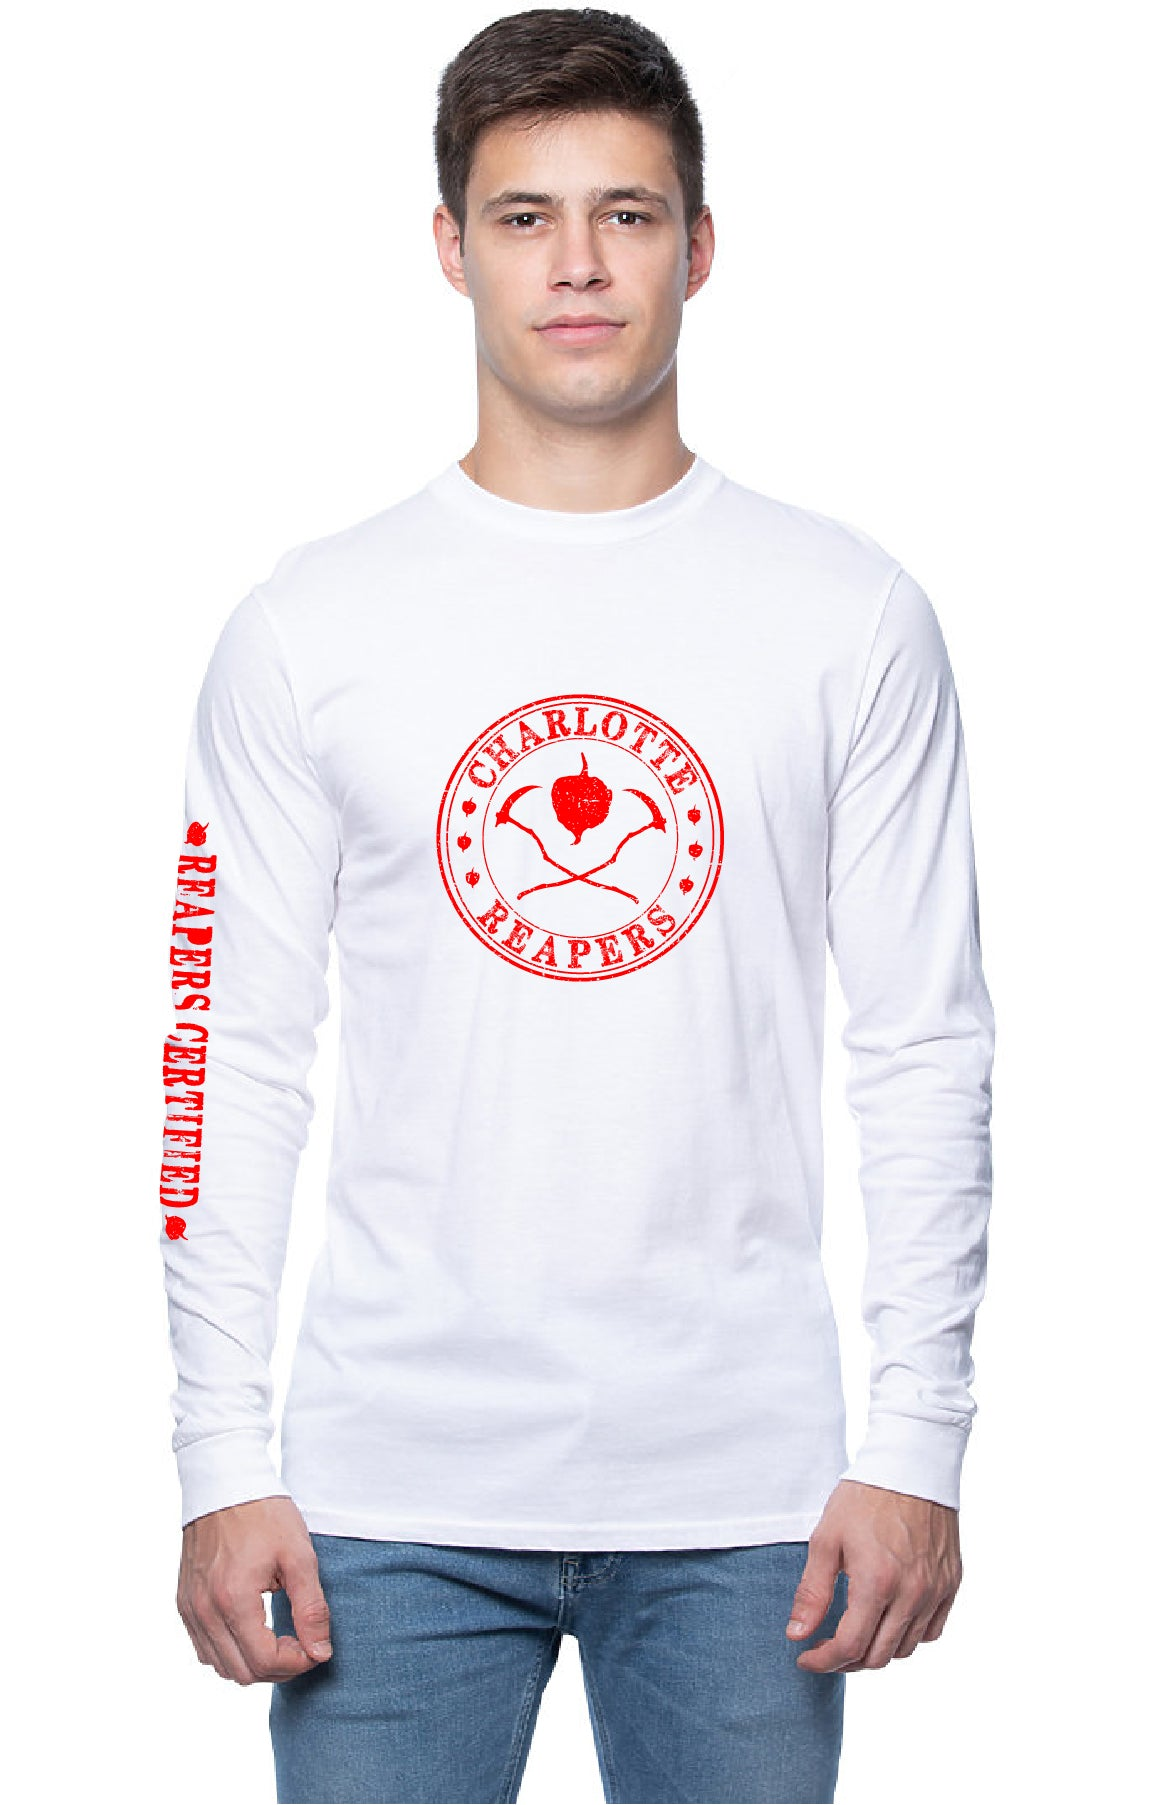 "T's - Long Sleeve Unisex - ""Charlotte Reapers"" design - 100% Cotton"